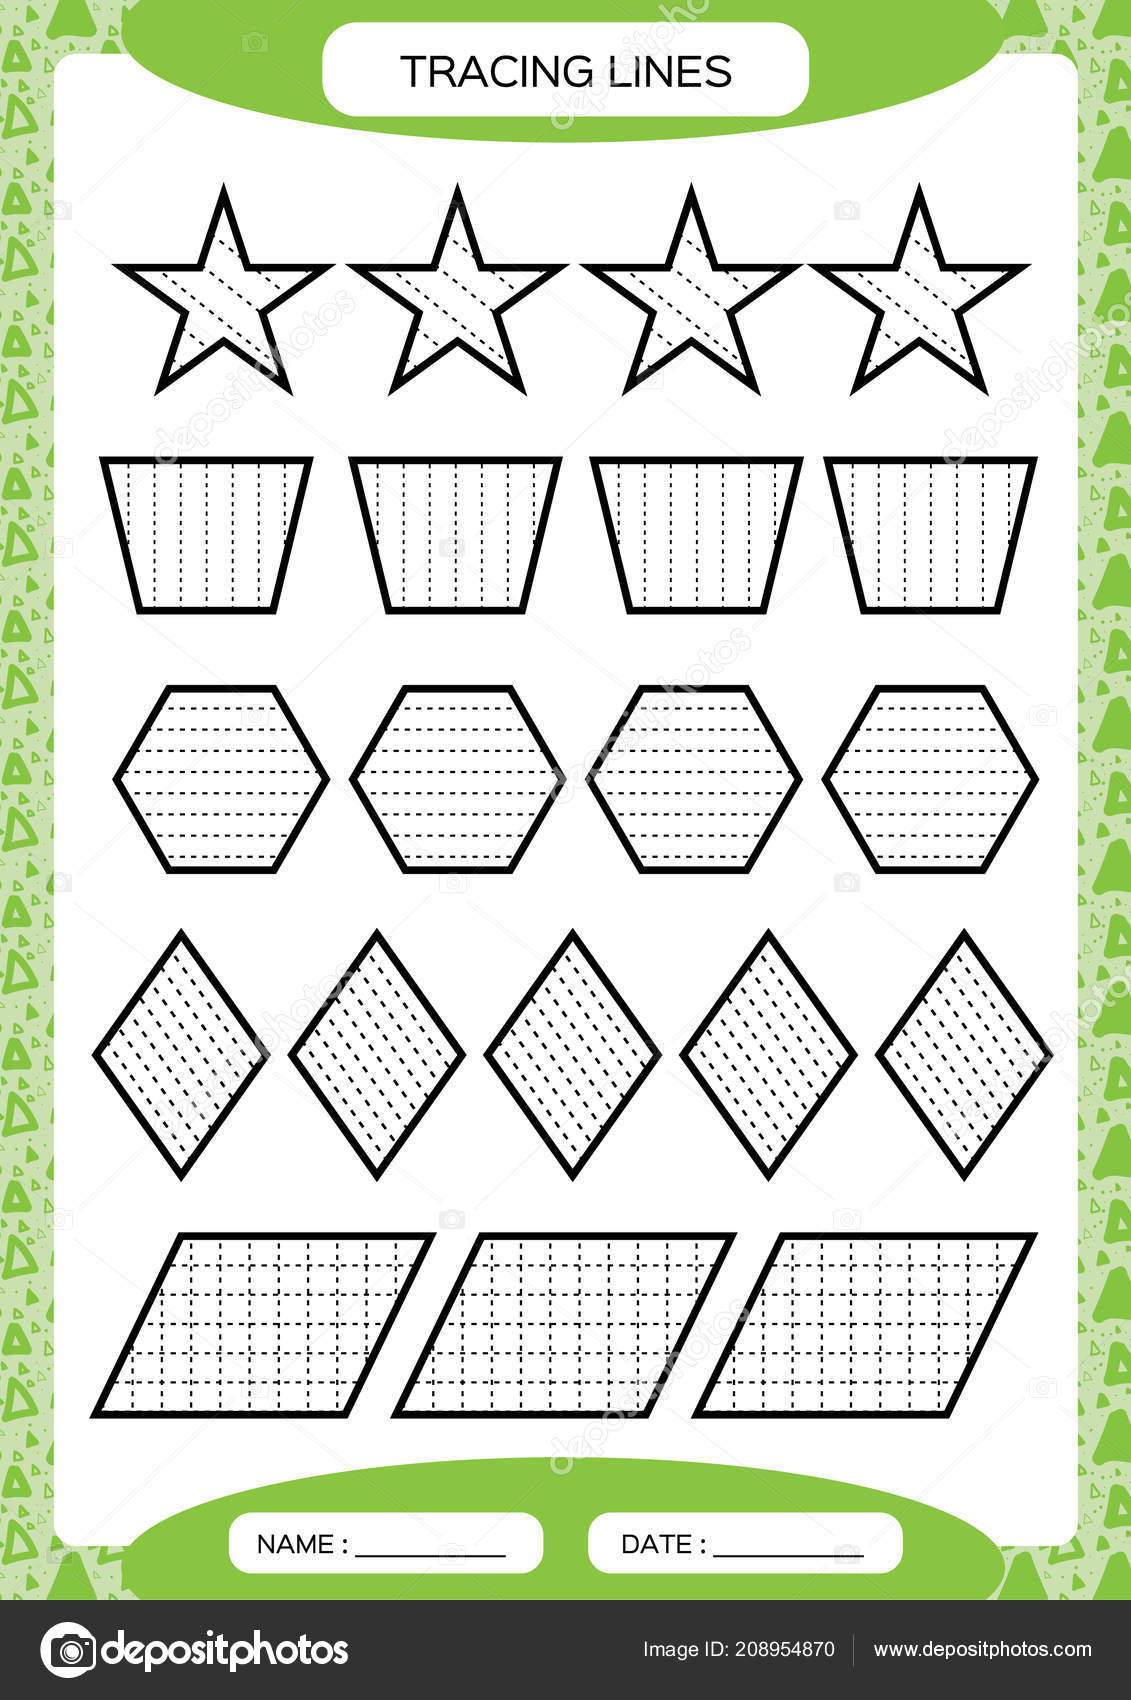 Pictures Trace Lines For Preschoolers